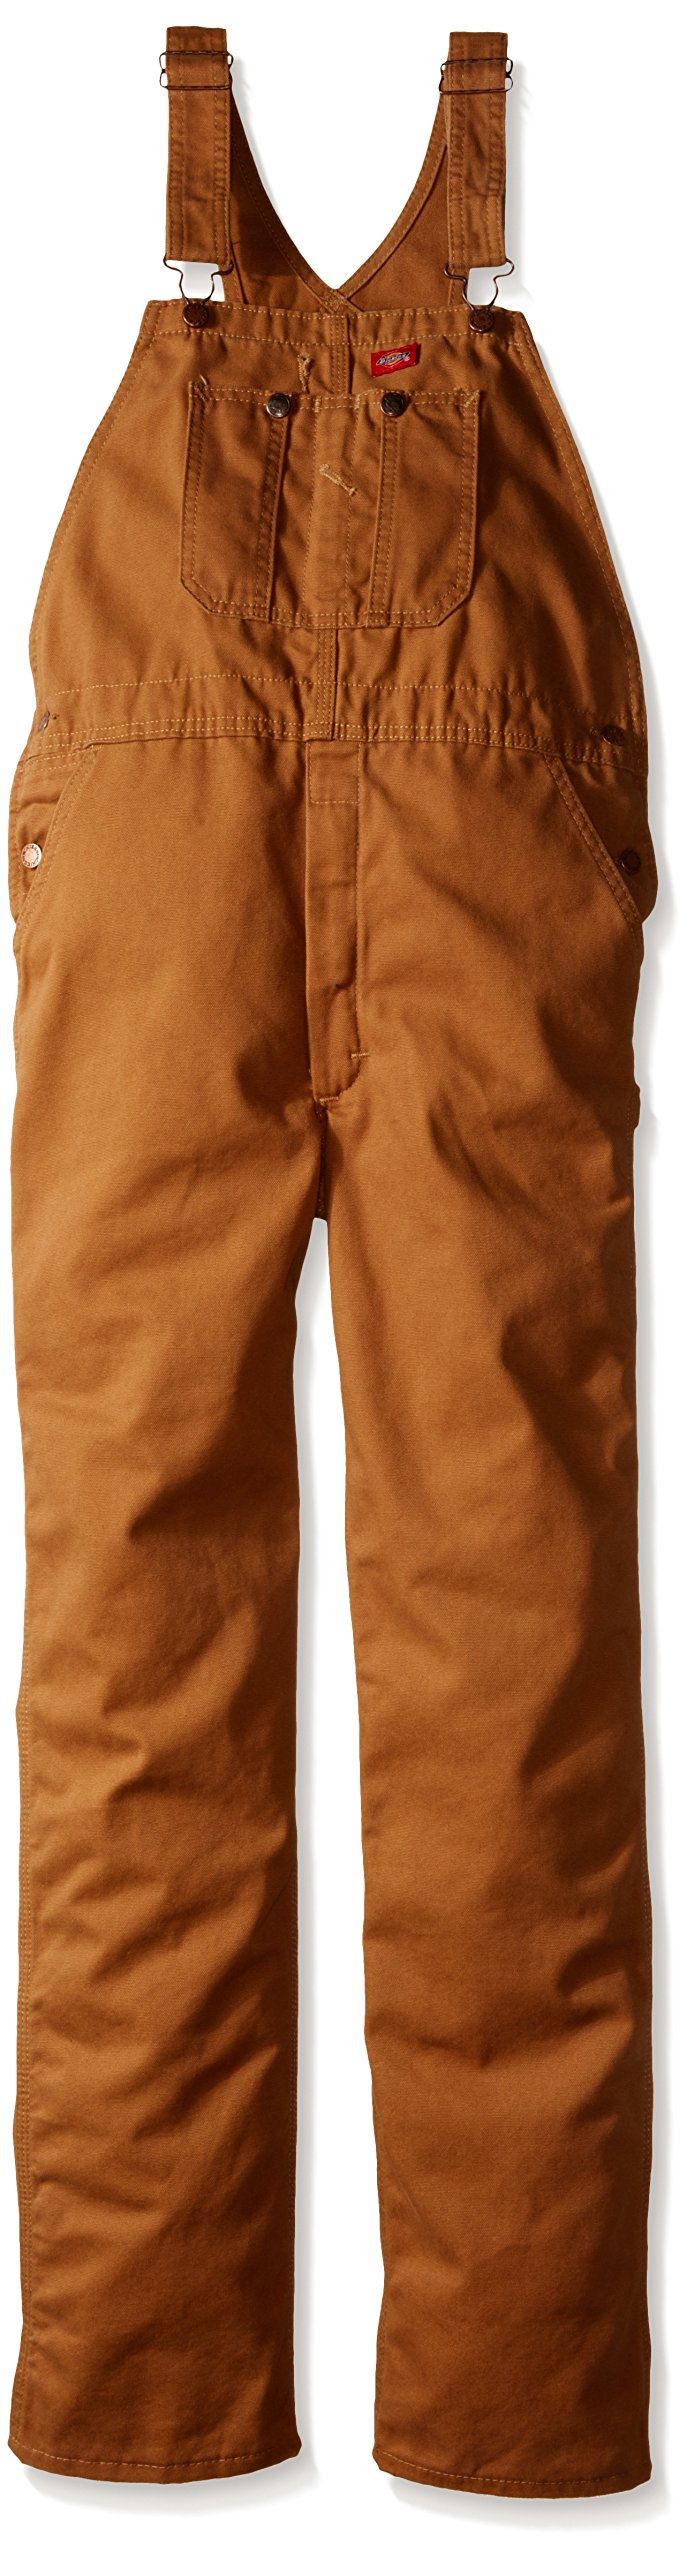 Dickies Little Boys' Duck Bib Overall, Brown Duck, Small (4)